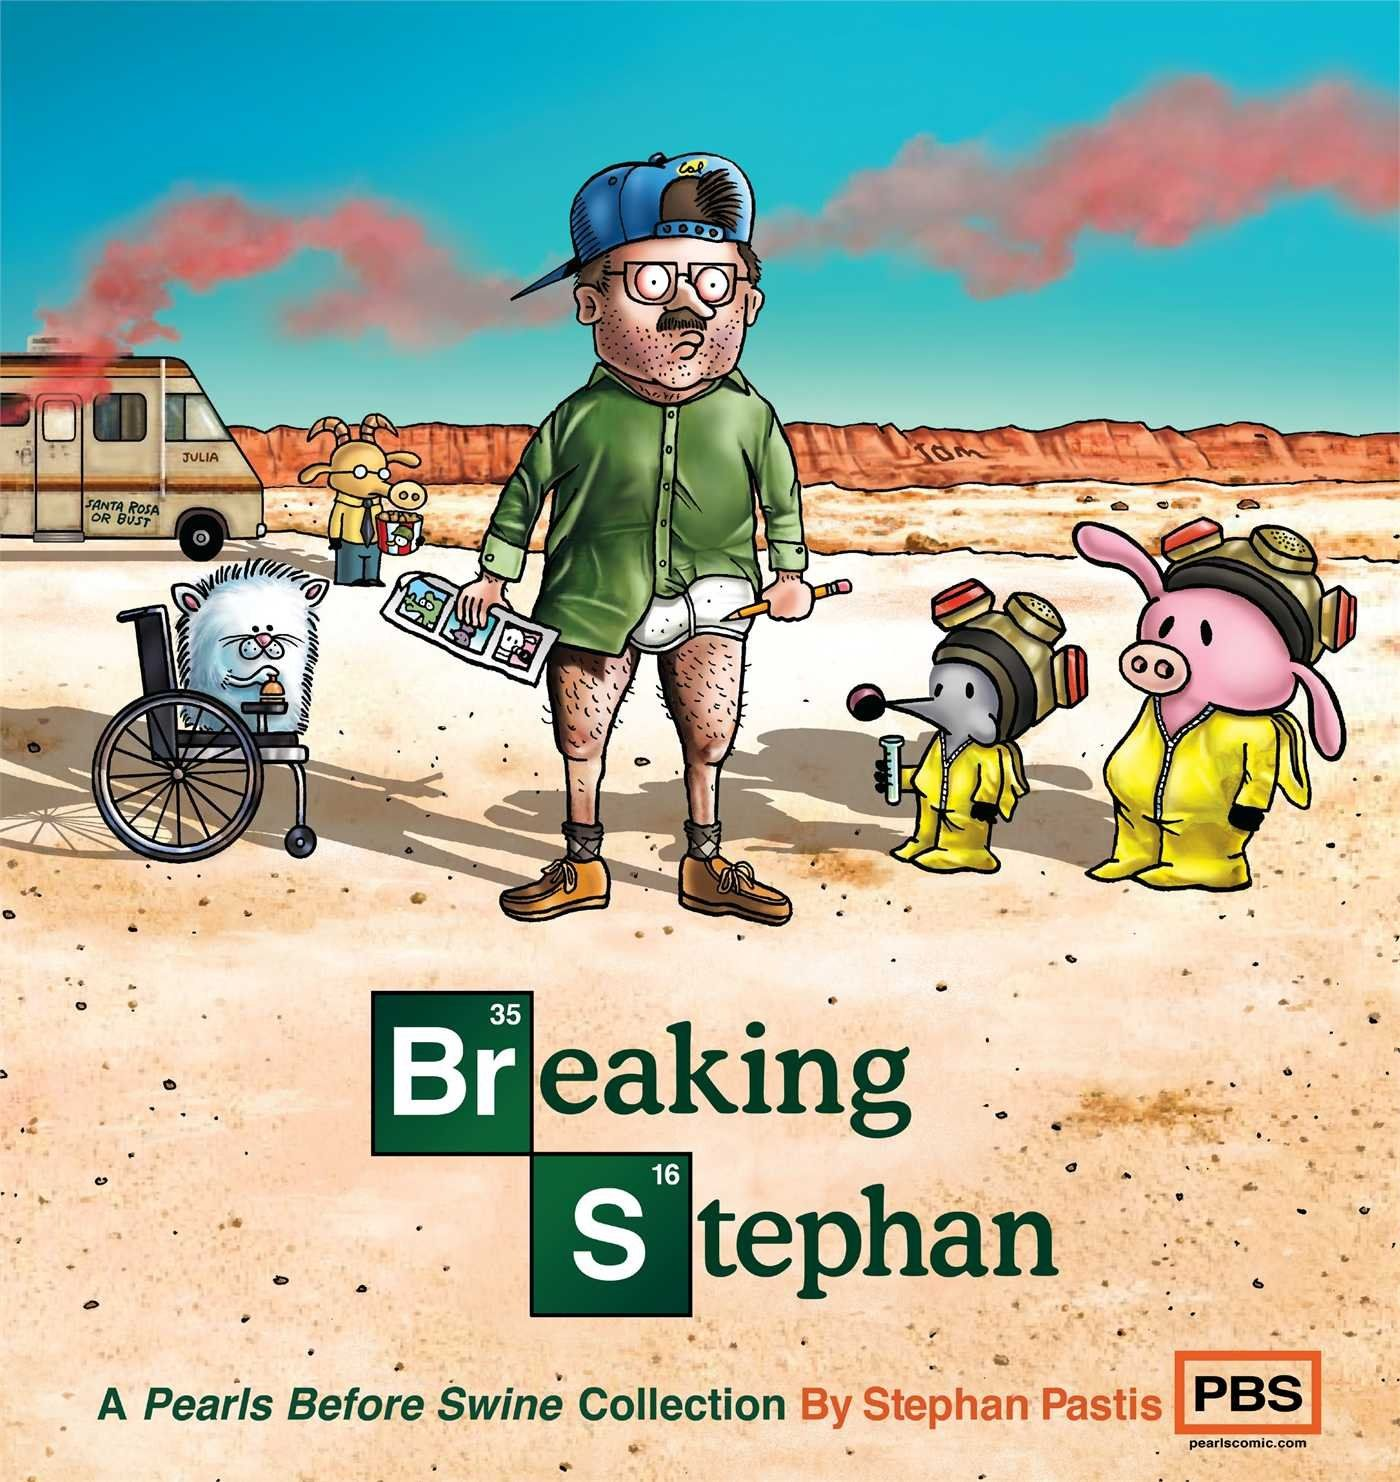 Breaking Stephan: A Pearls Before Swine Collection: Stephan Pastis: 9781449458300: AmazonSmile: Books